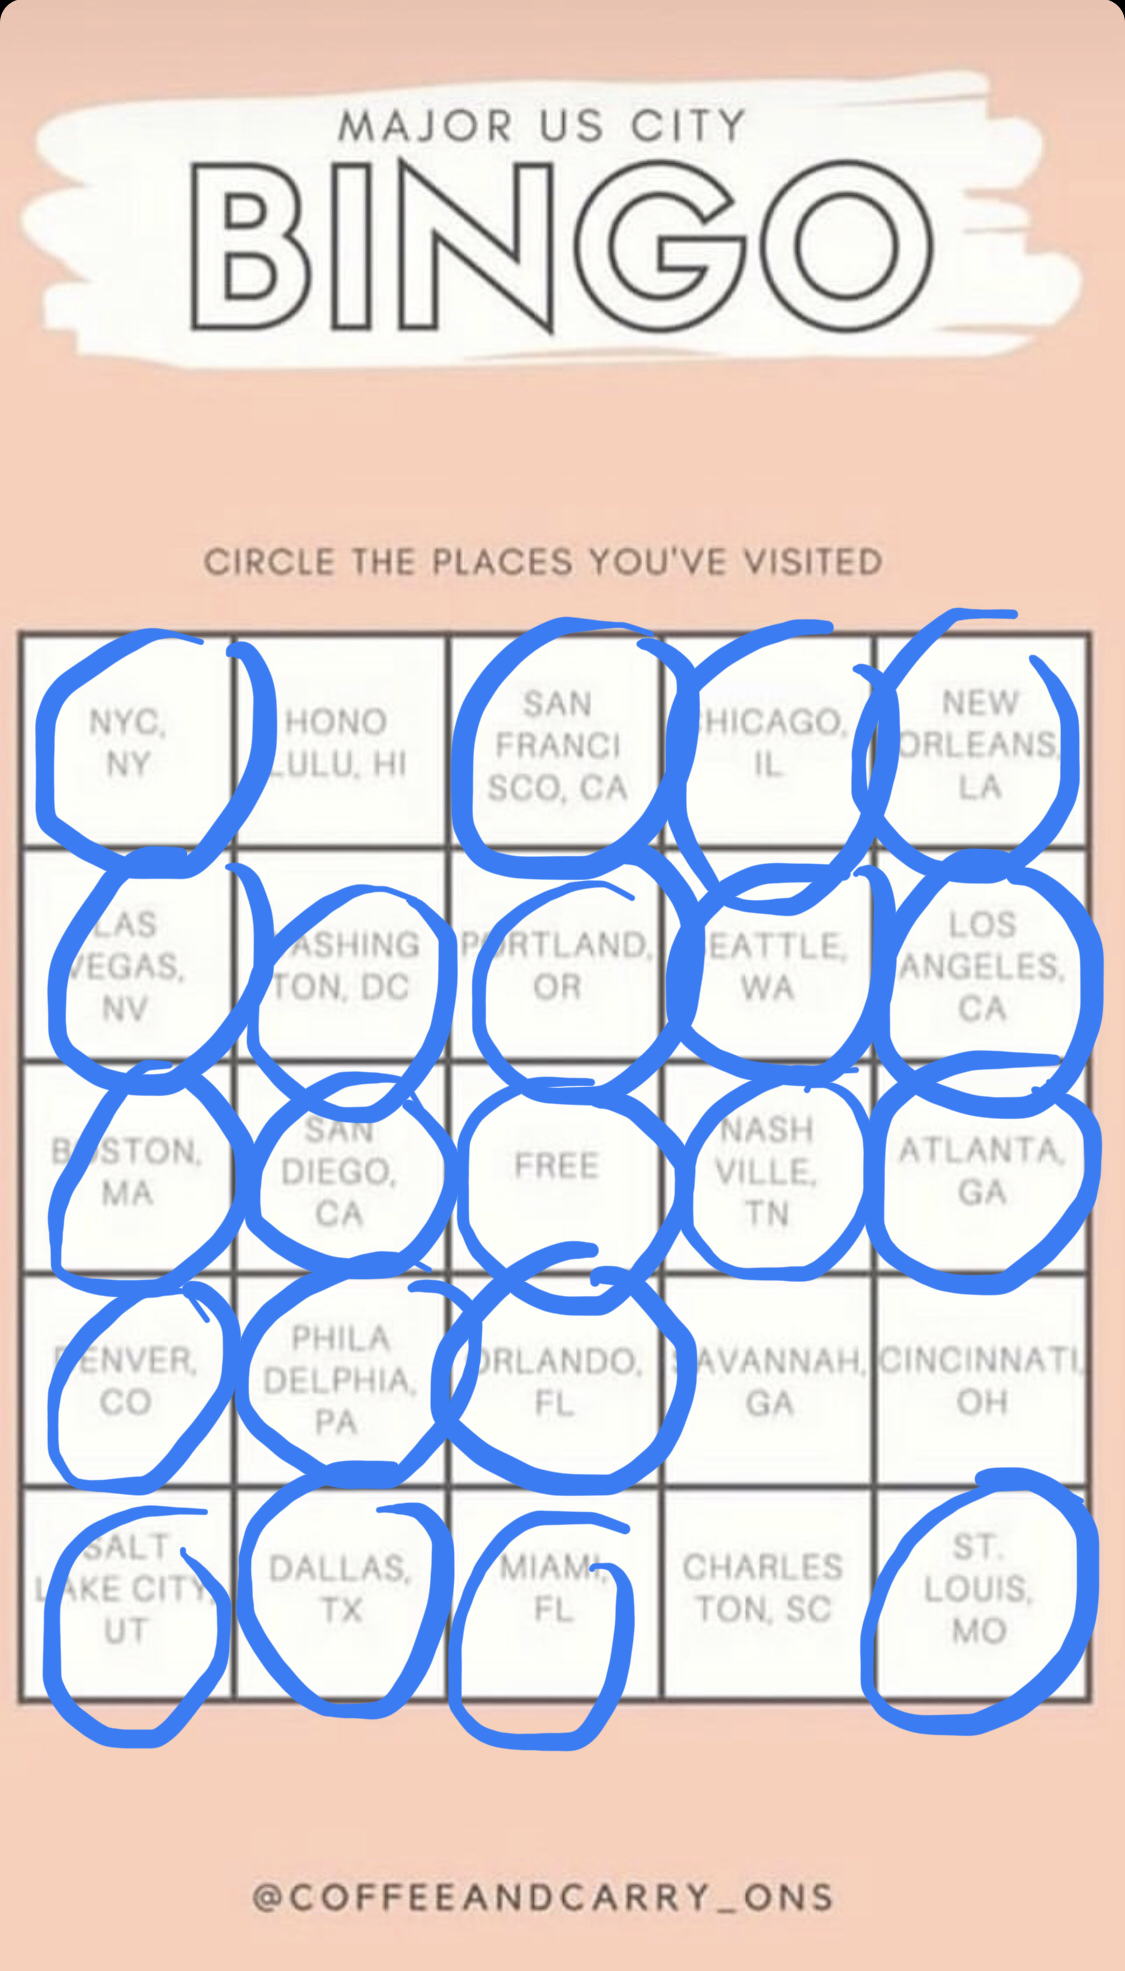 Major US City Bingo.jpg